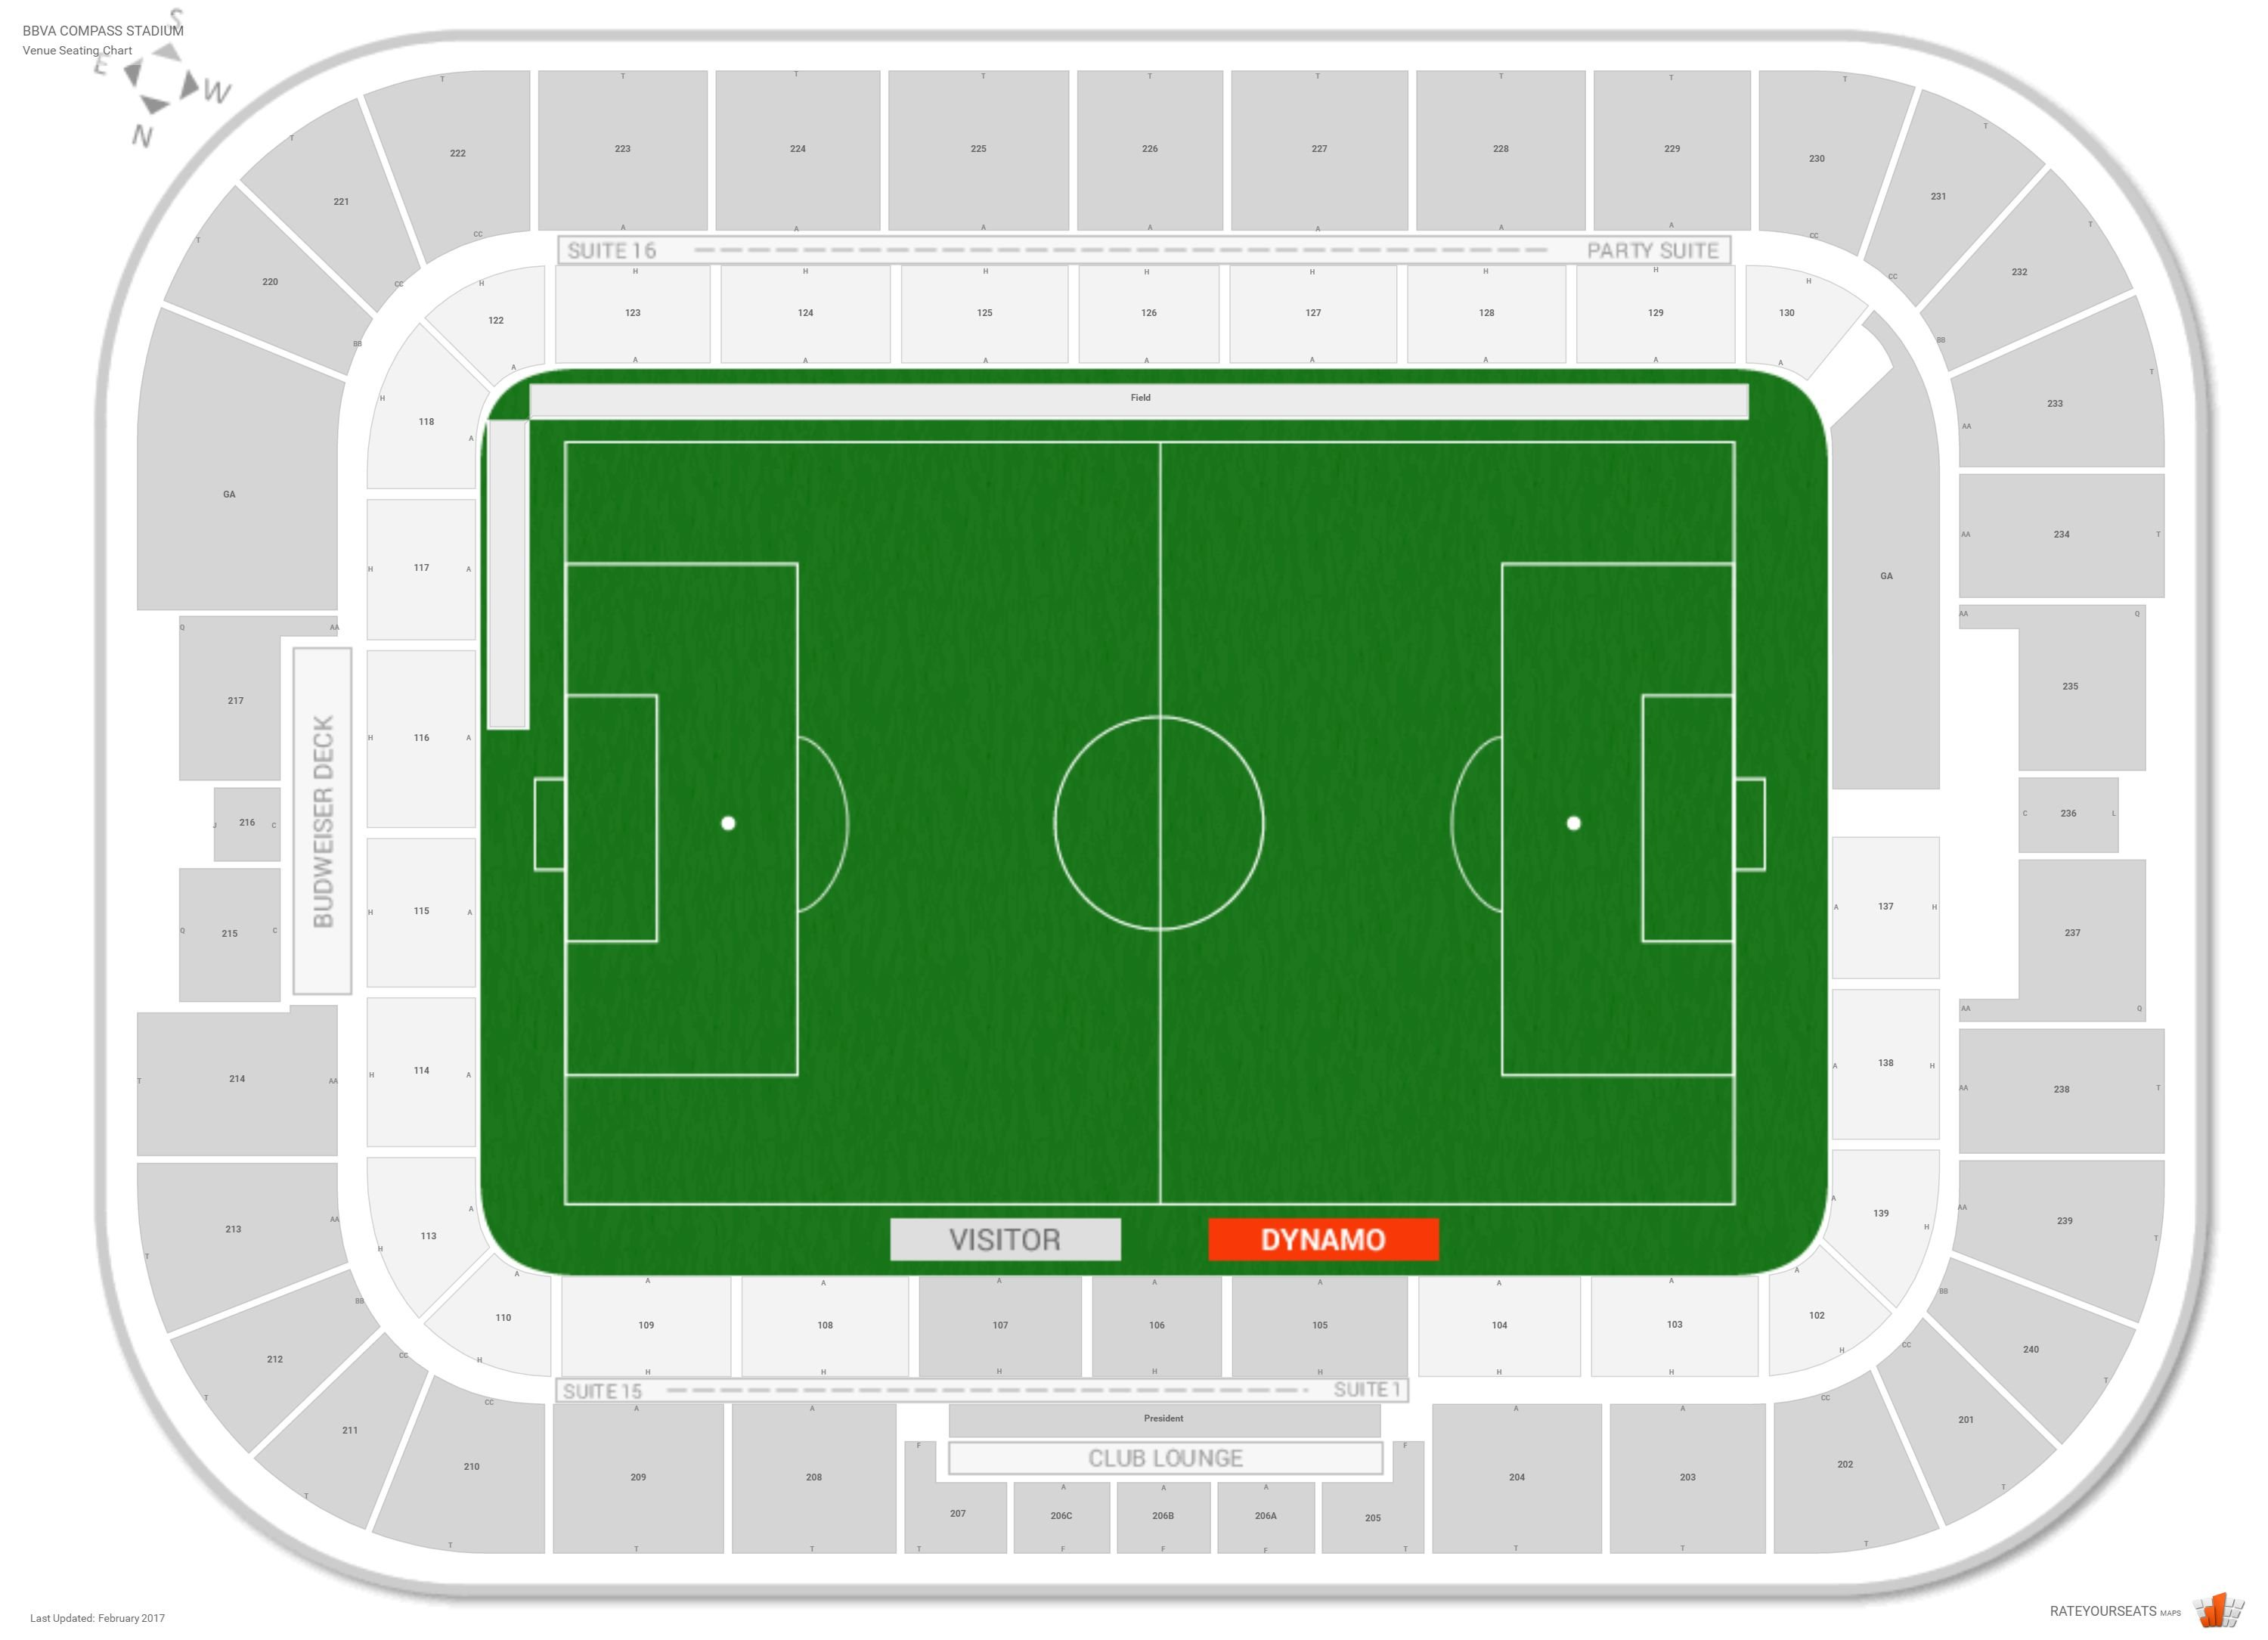 bbva compass stadium seat map